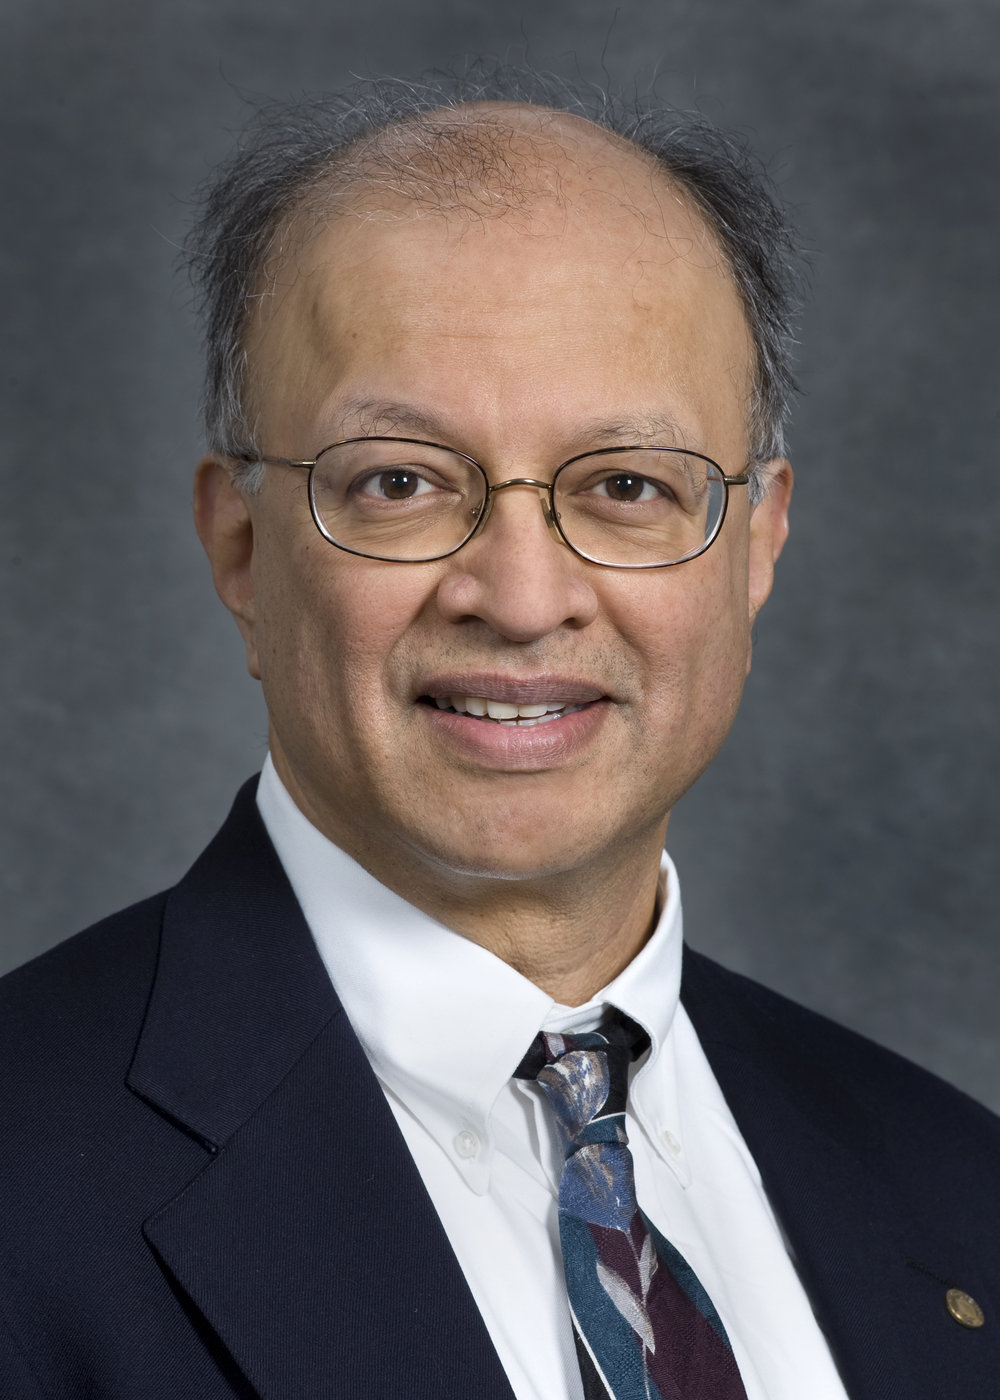 Ashok Gadgil, PhD Adviser Faculty Senior Scientist Berkeley National Laboratory Prince Sultan bin Abdulaziz International Prize for Water